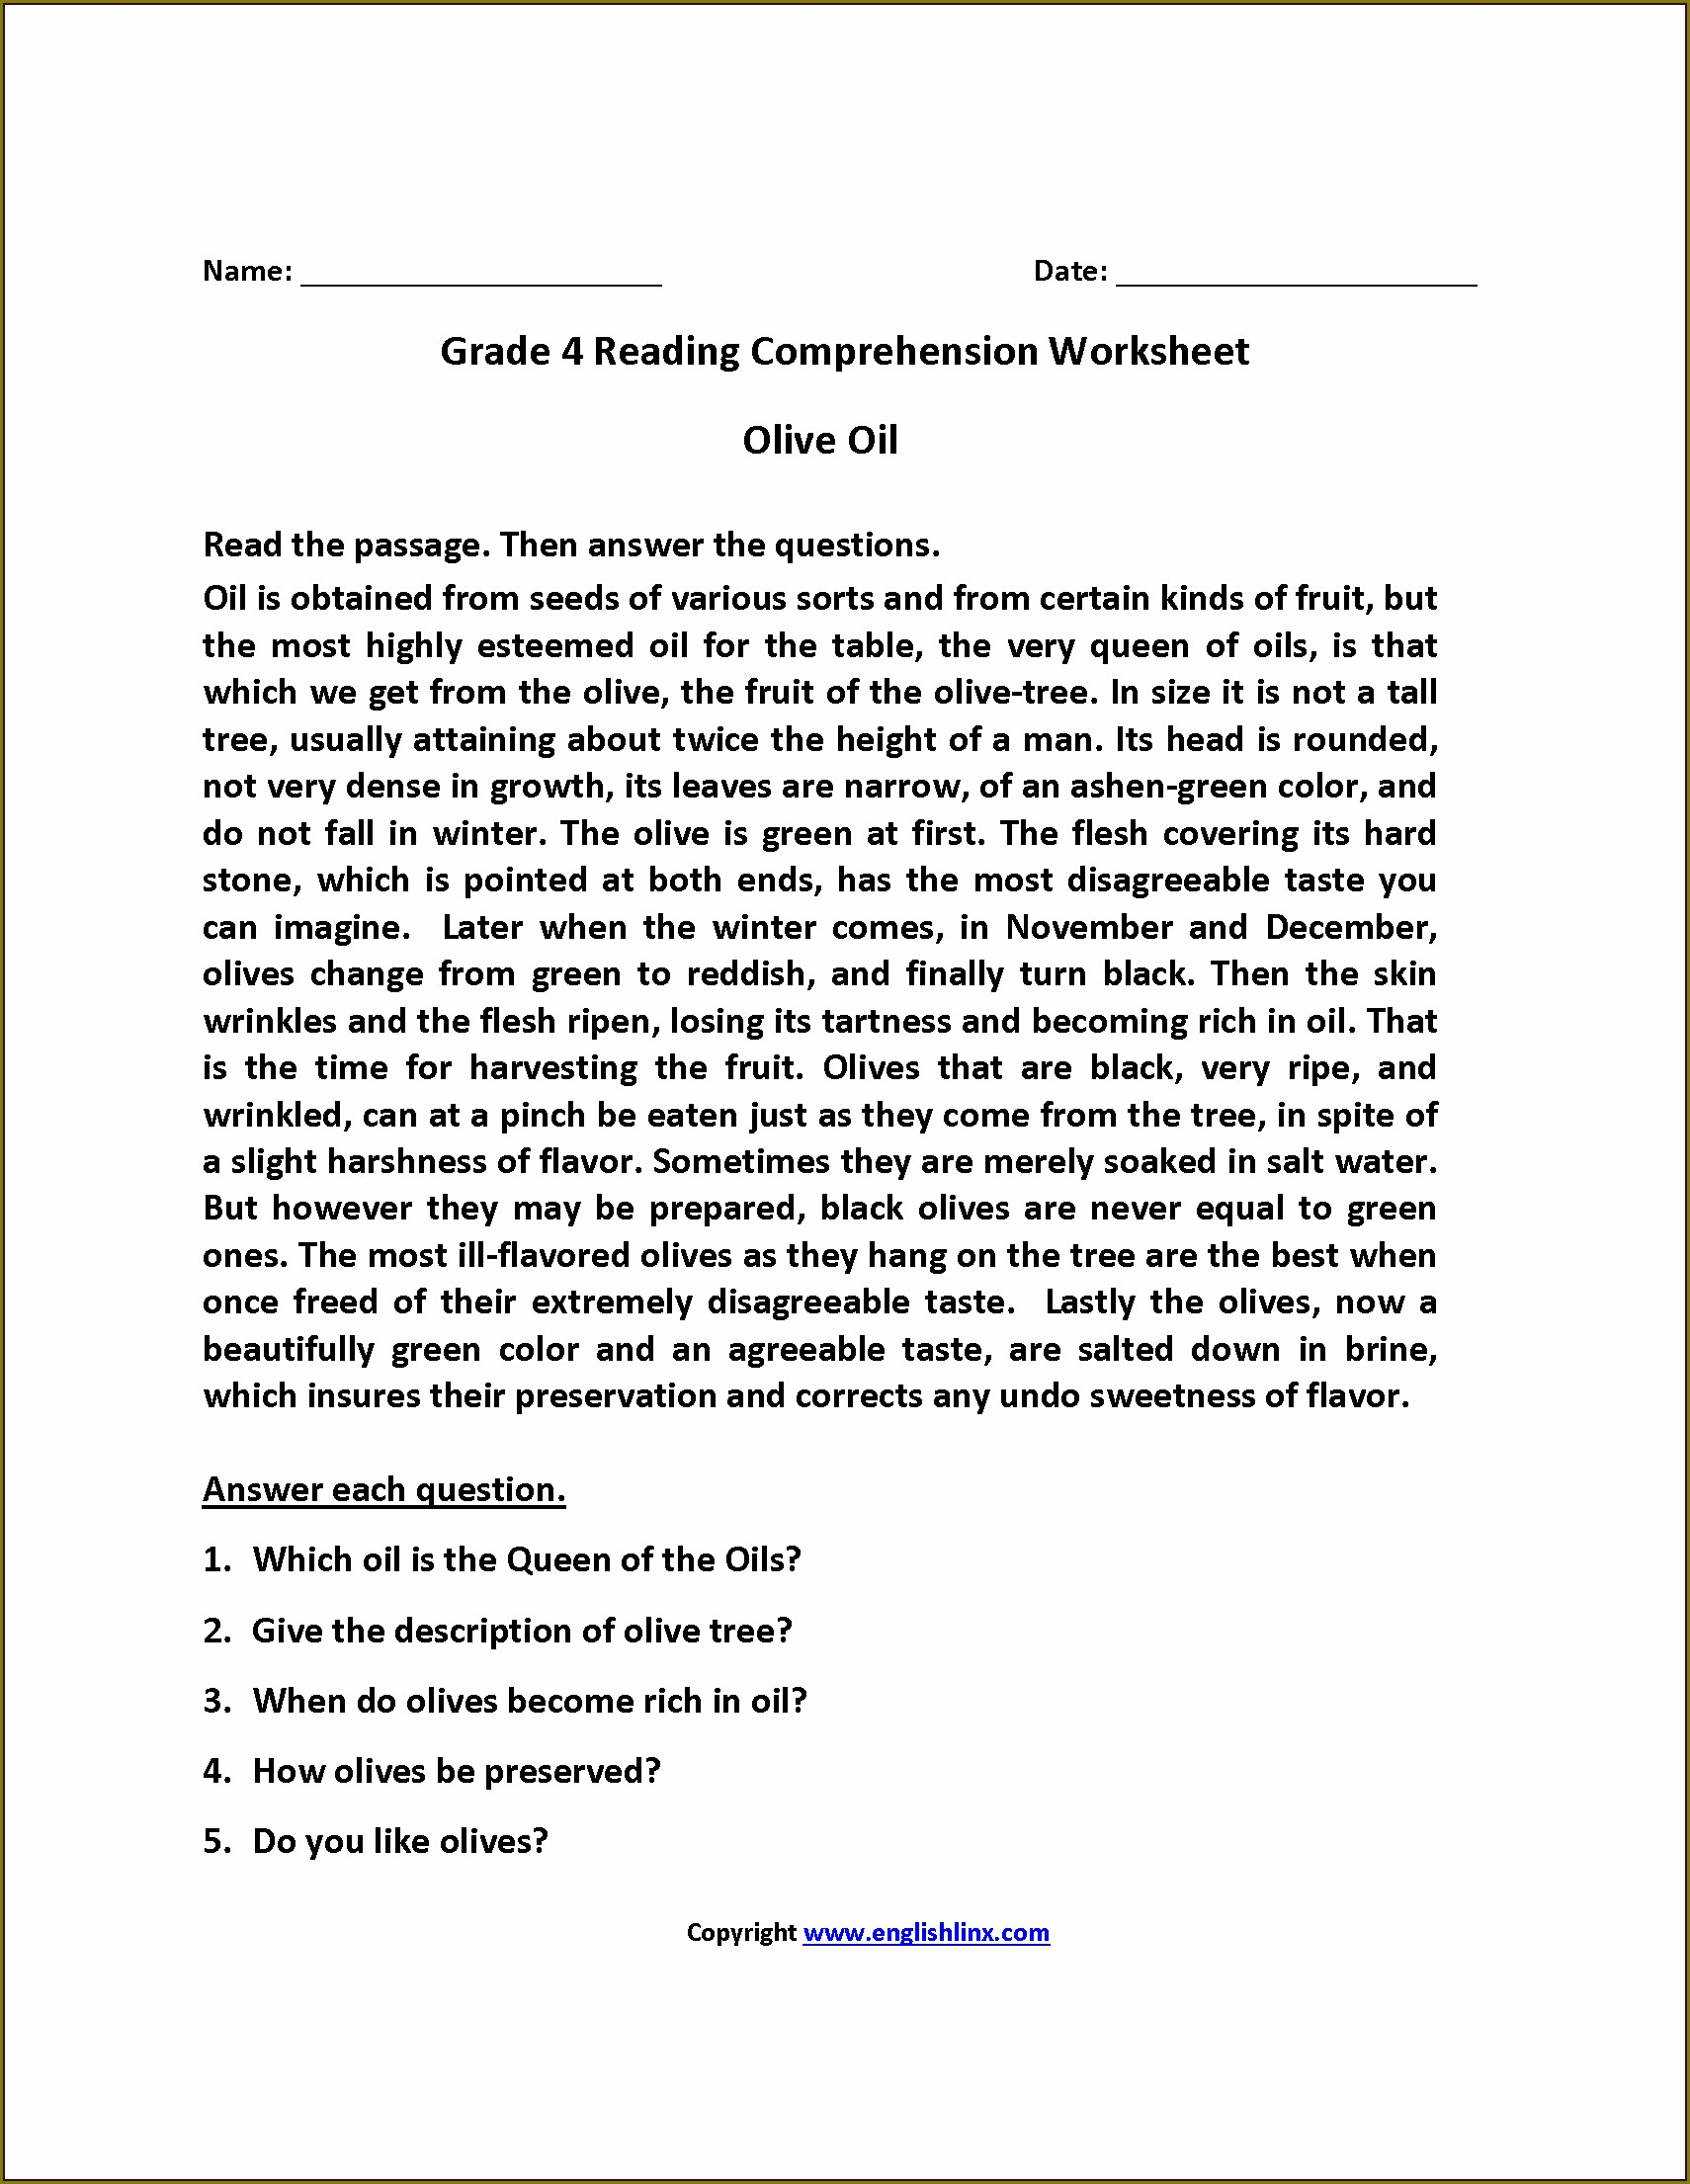 5th Grade English Worksheets For Grade 4 With Answers